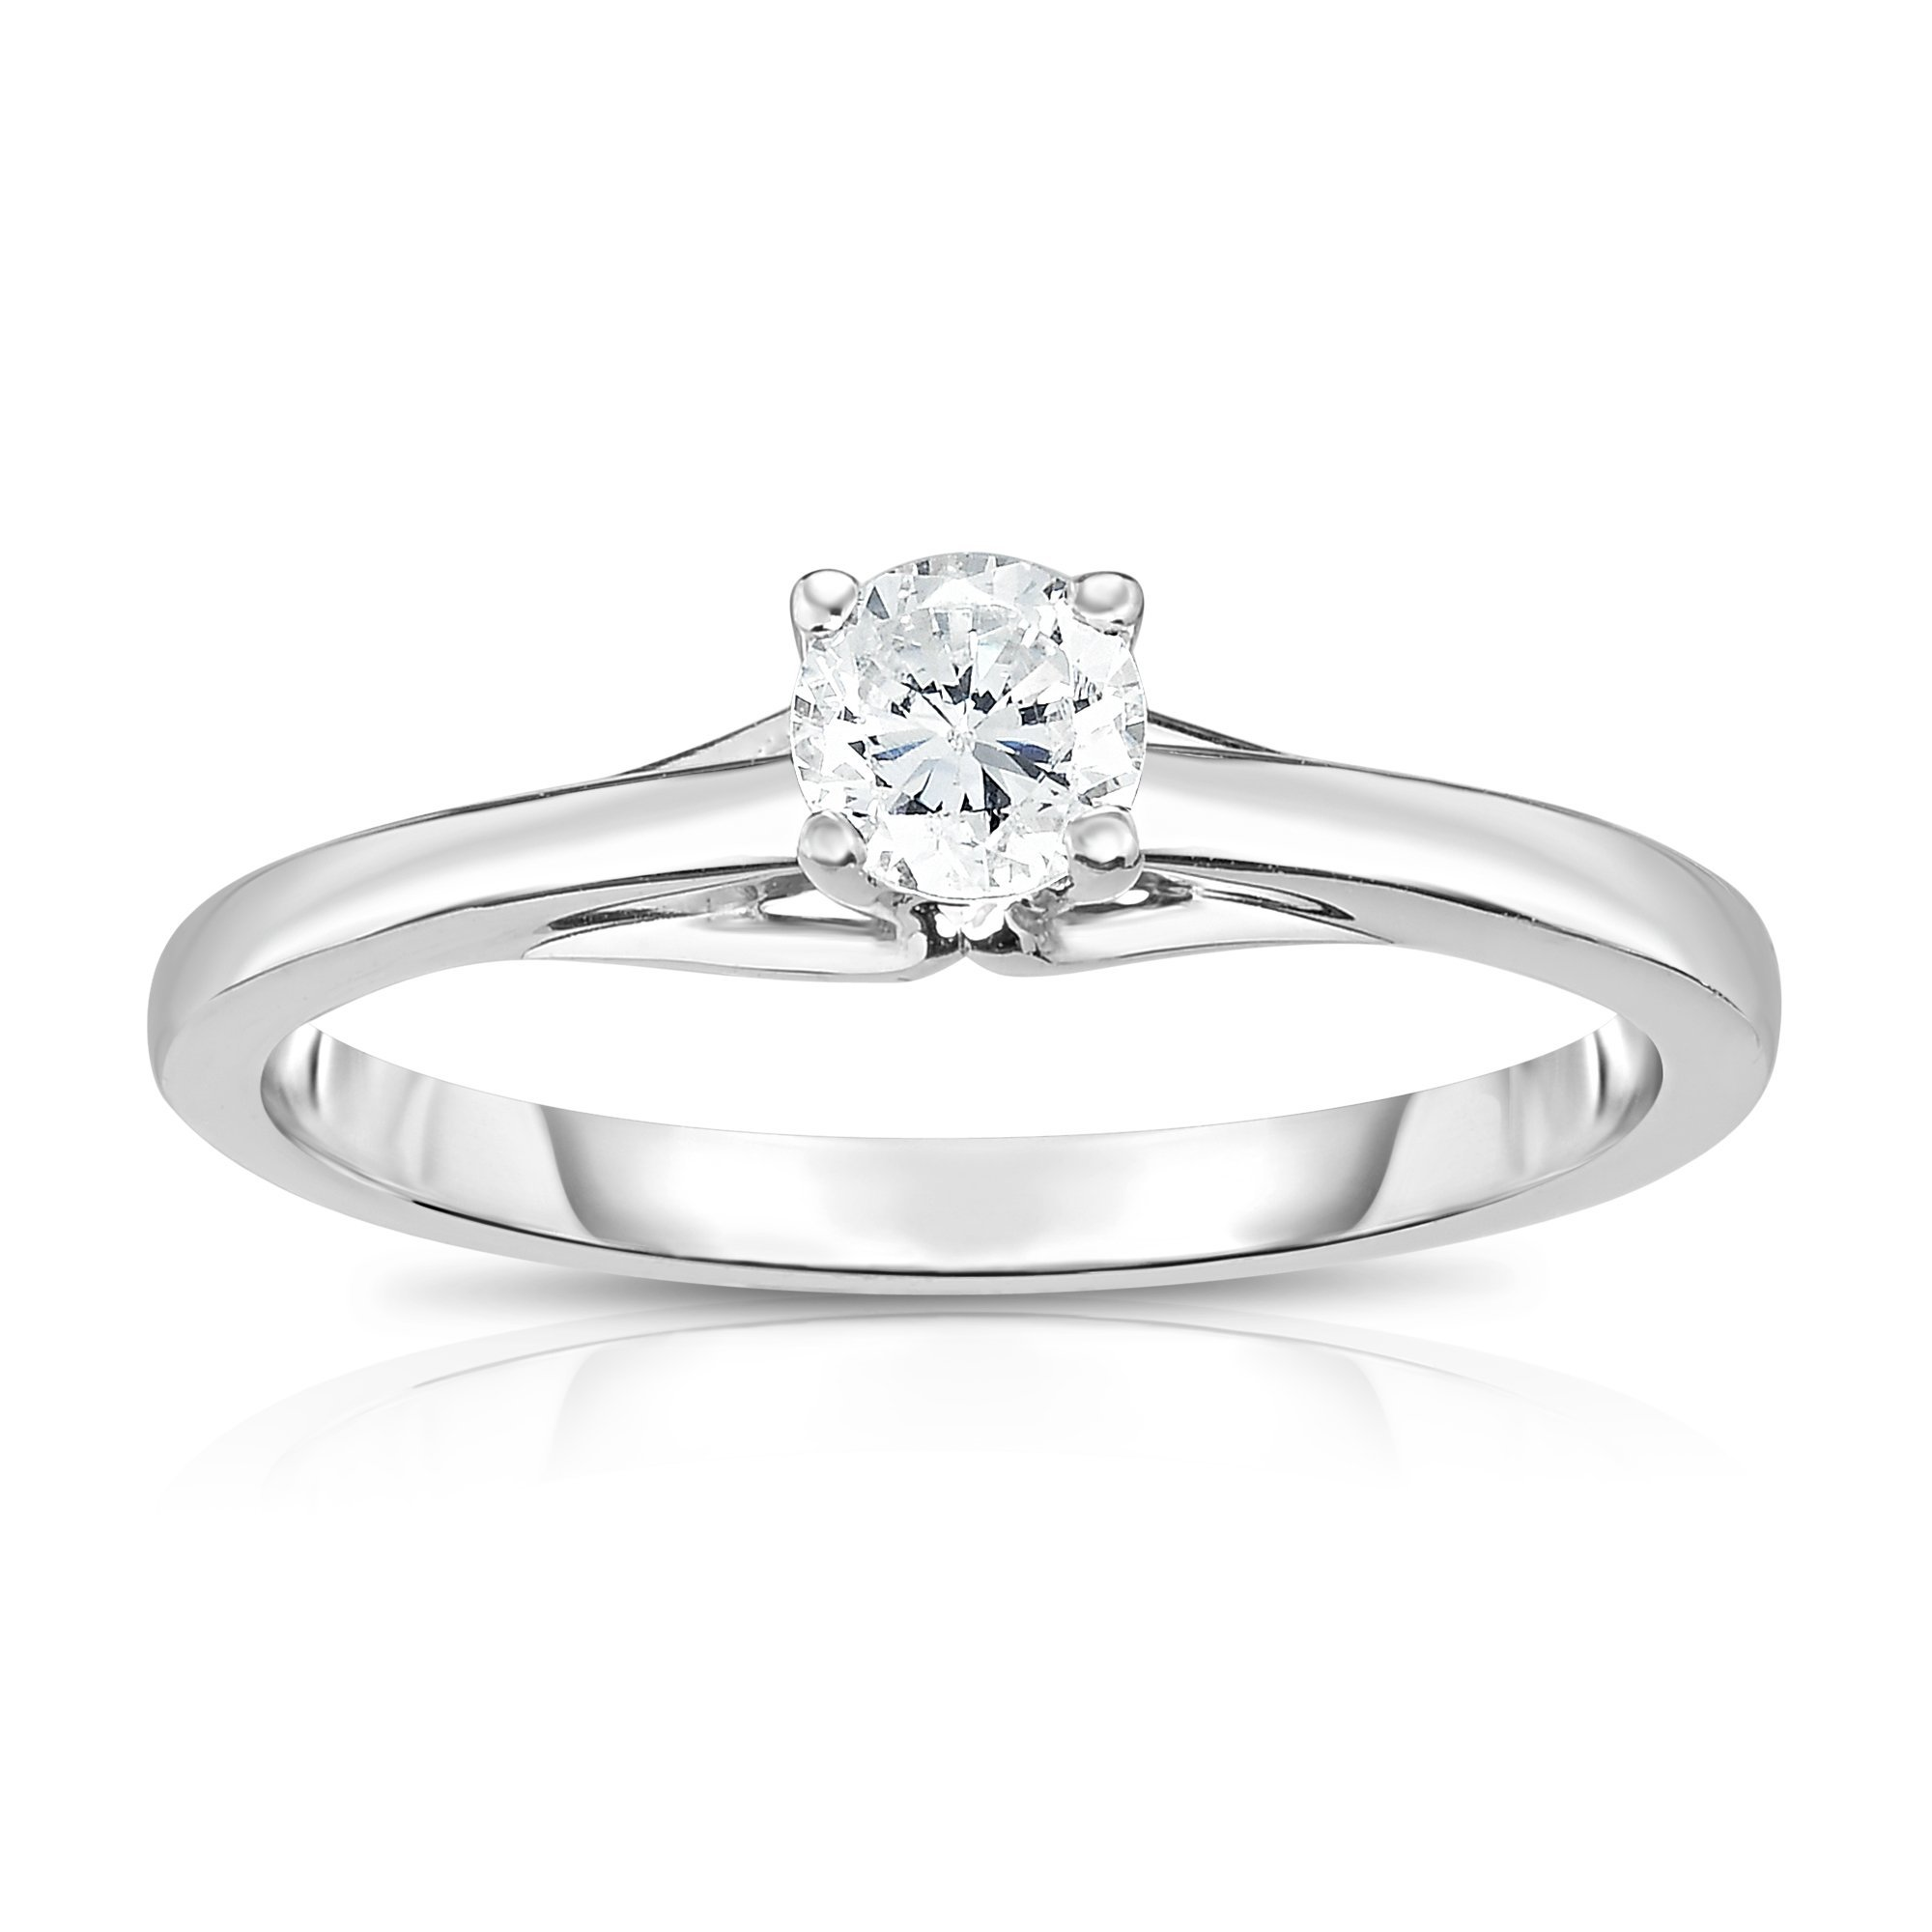 Noray Designs 14K White Gold Diamond (0.25 Ct, SI2-I1 Clarity, G-H Color) Solitaire Ring